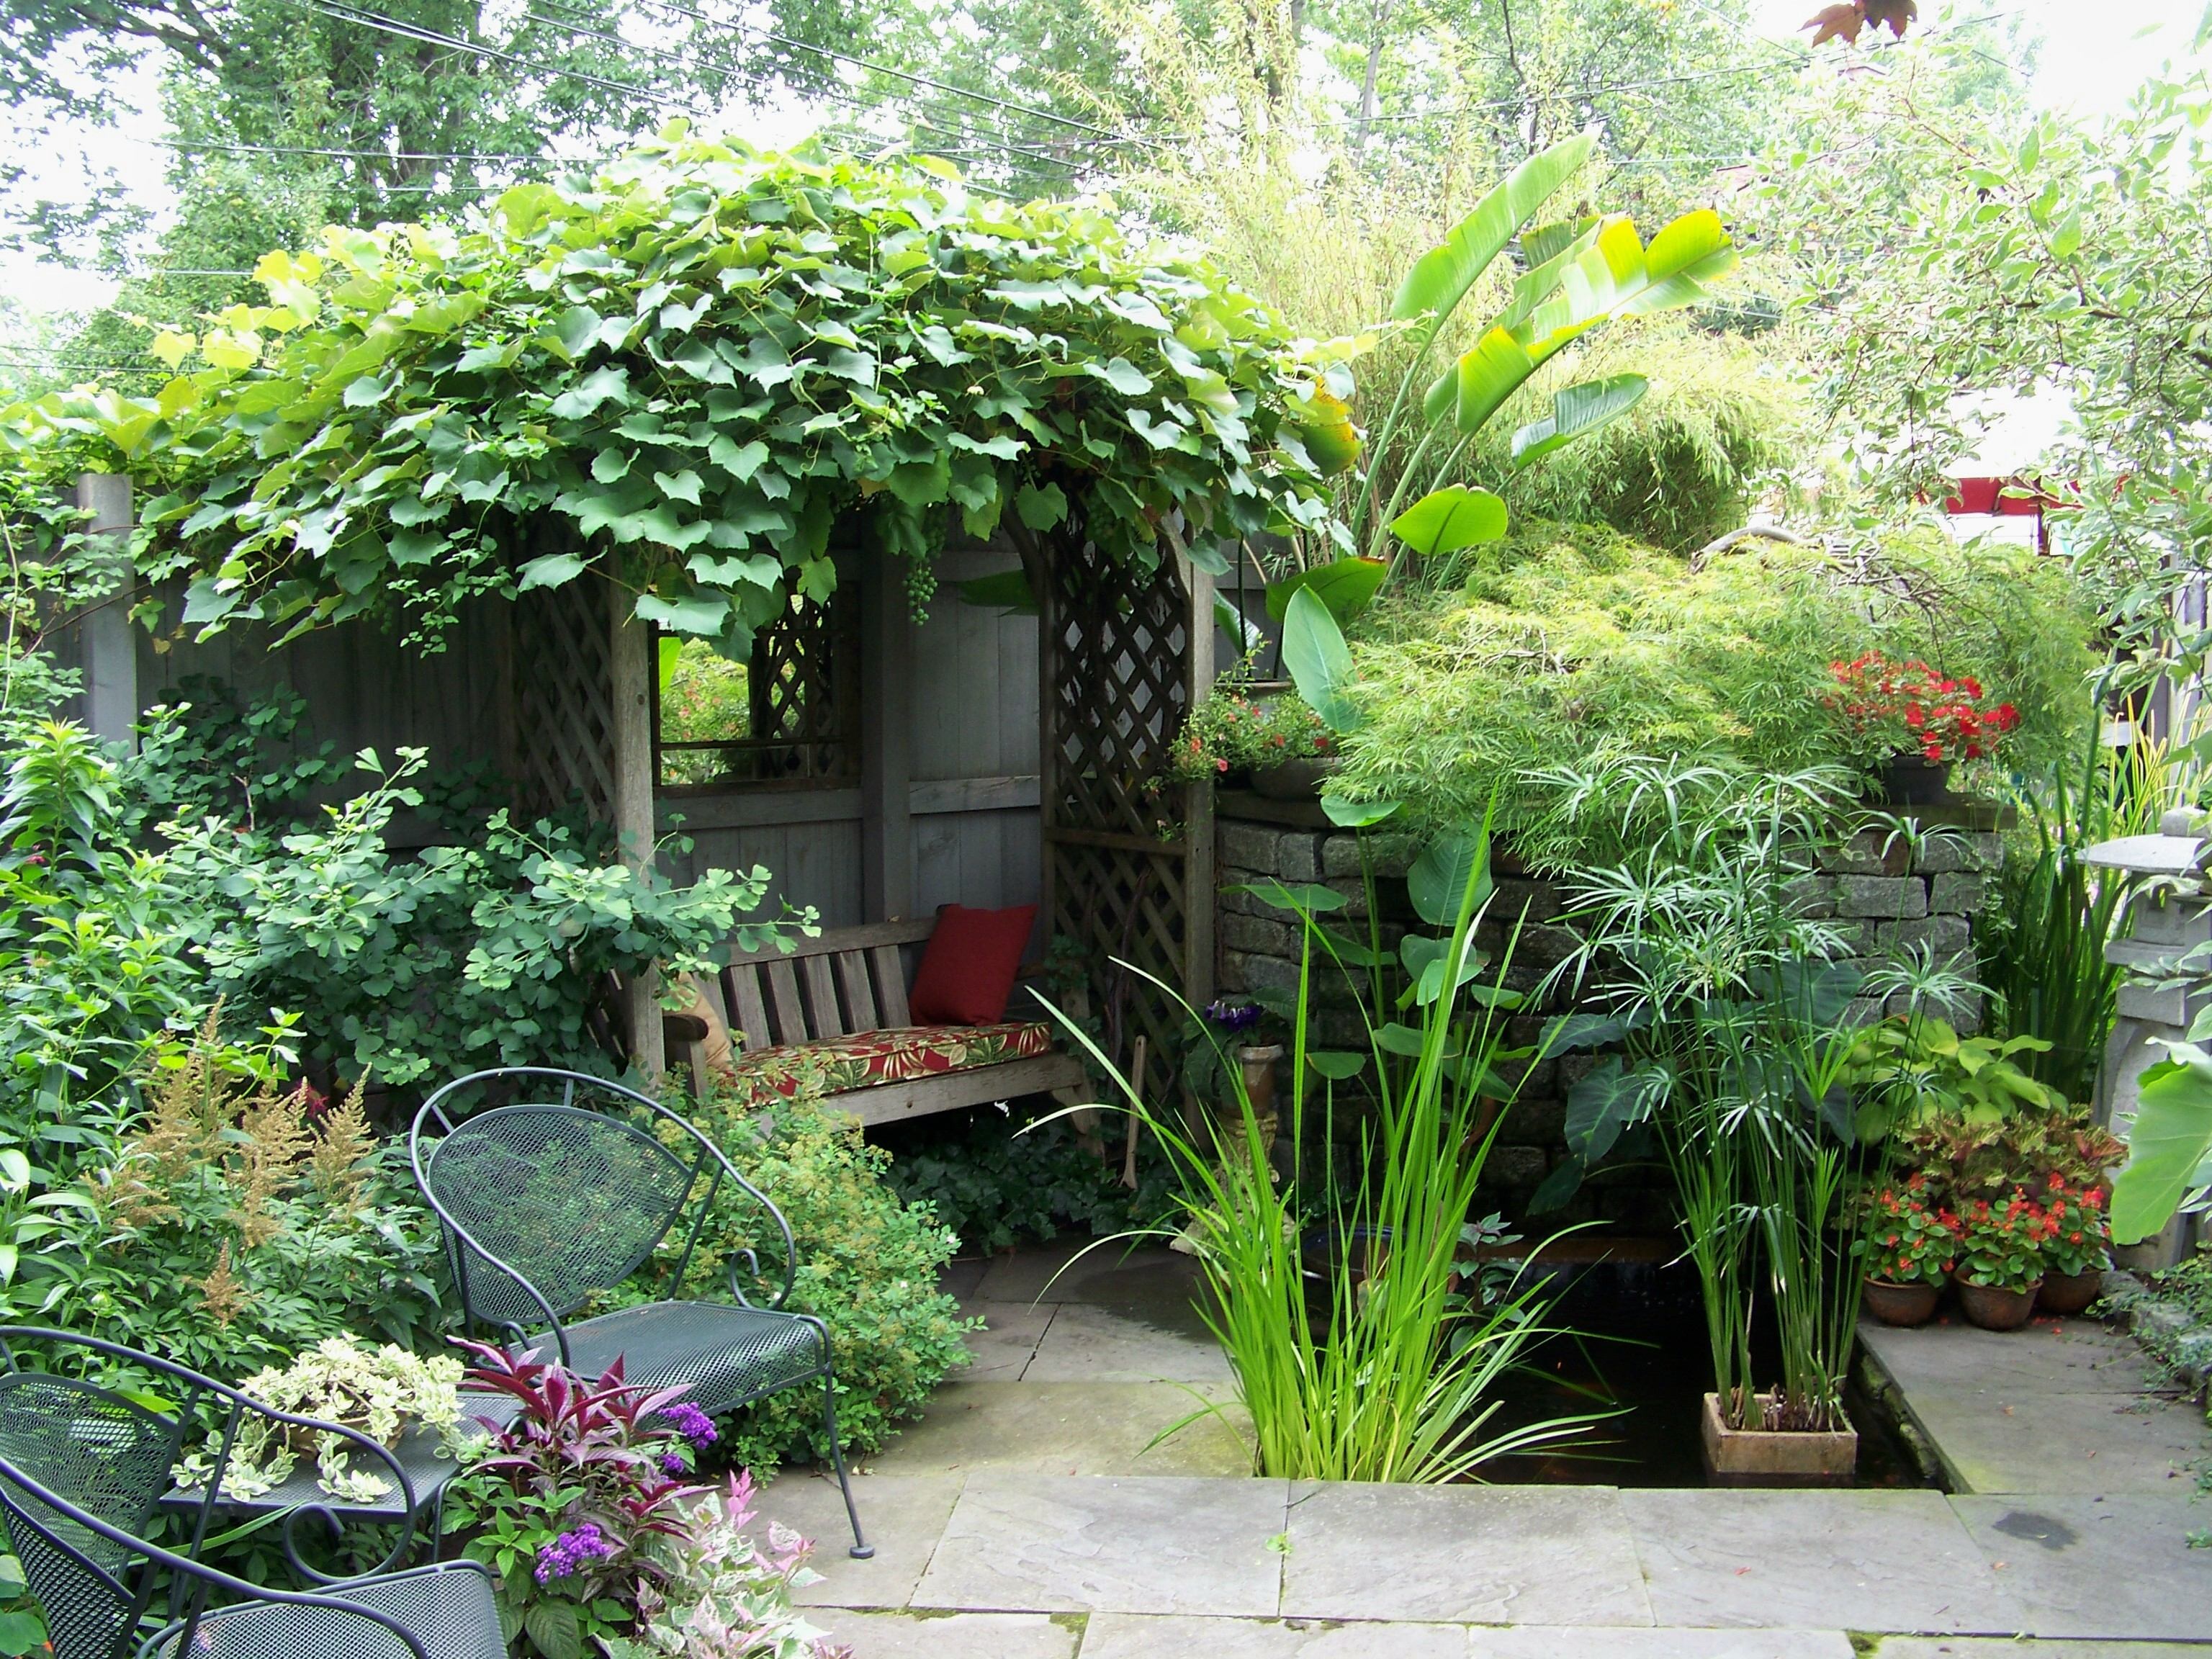 5 amazing small yard garden ideas nlc loans for Ideas para decorar patios y jardines